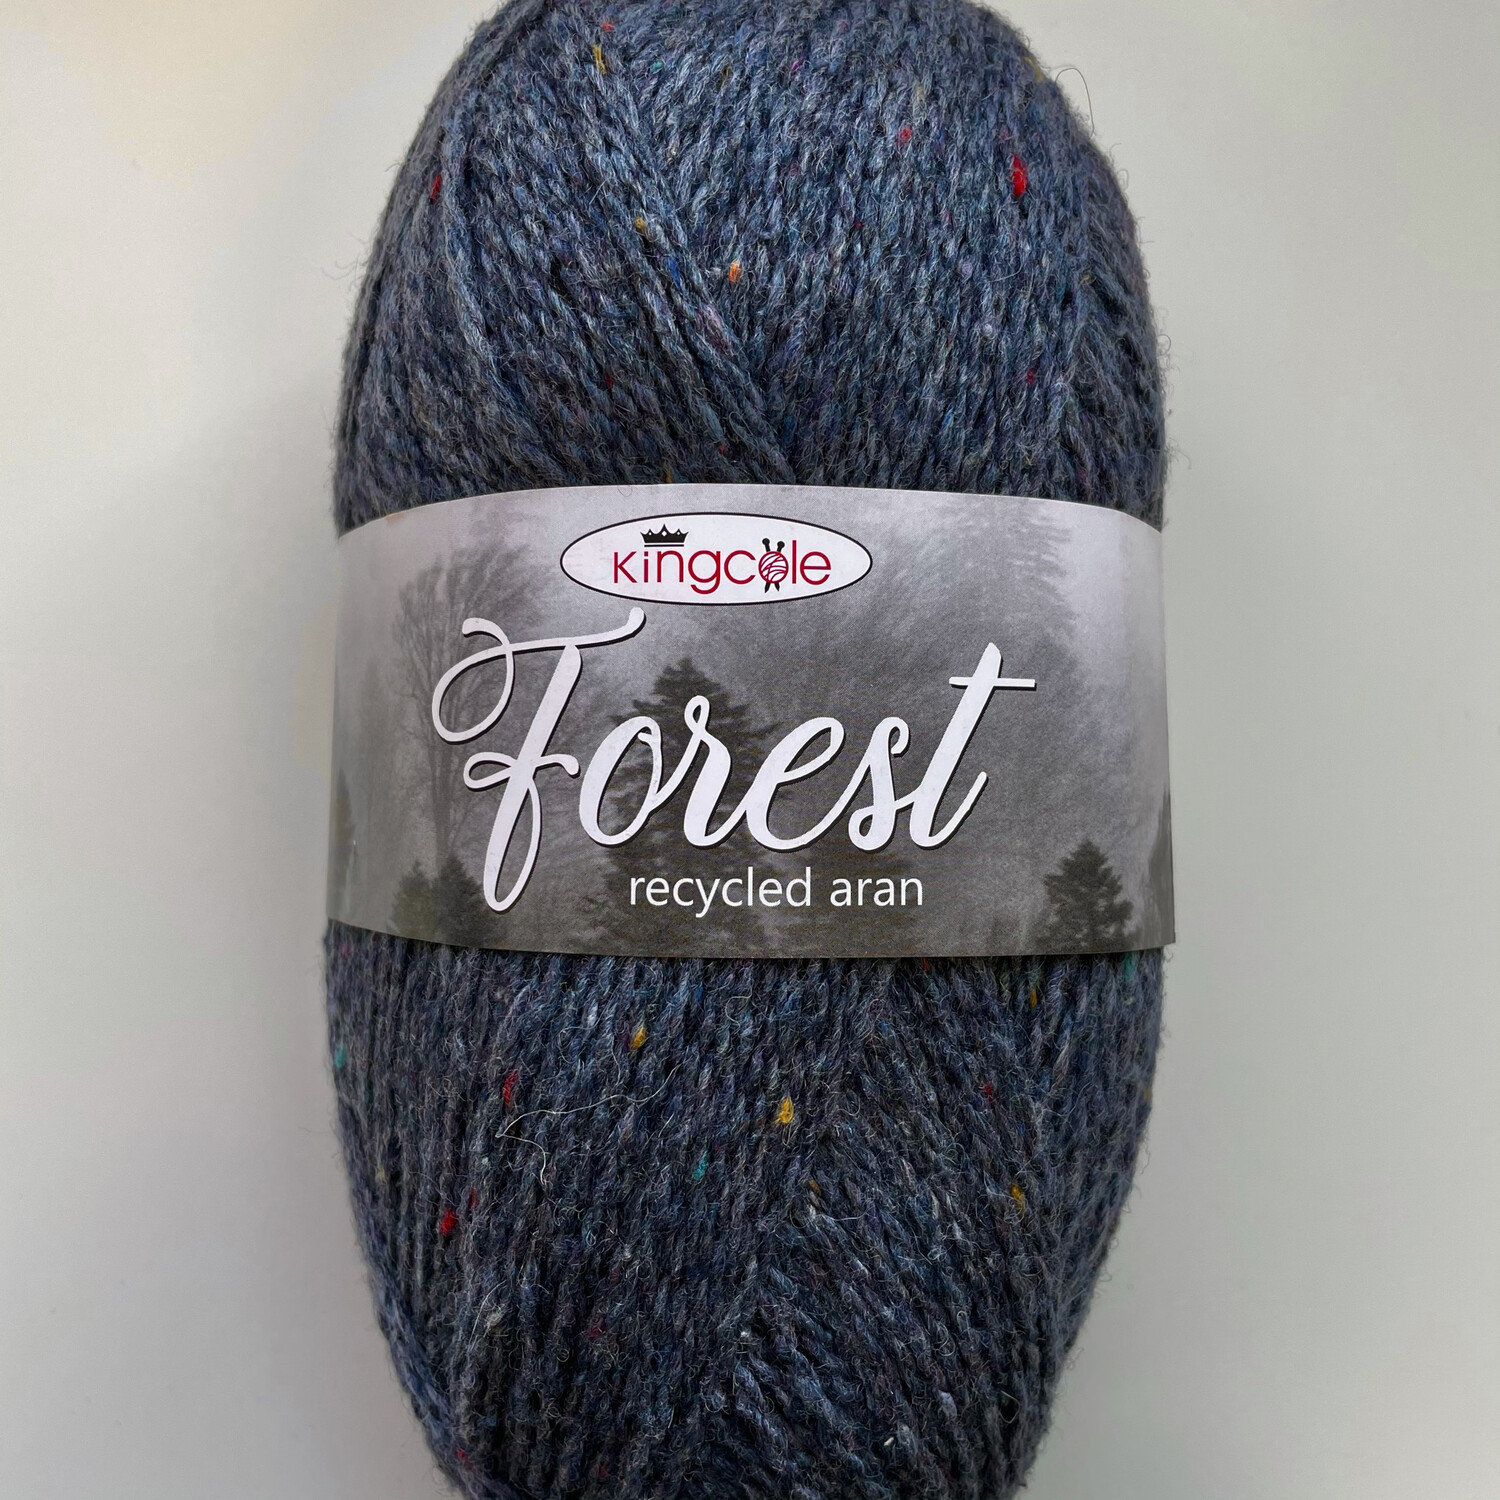 King Cole Forest Aran 100% Recycled Yarn containing 35% Wool - Kielder Forest